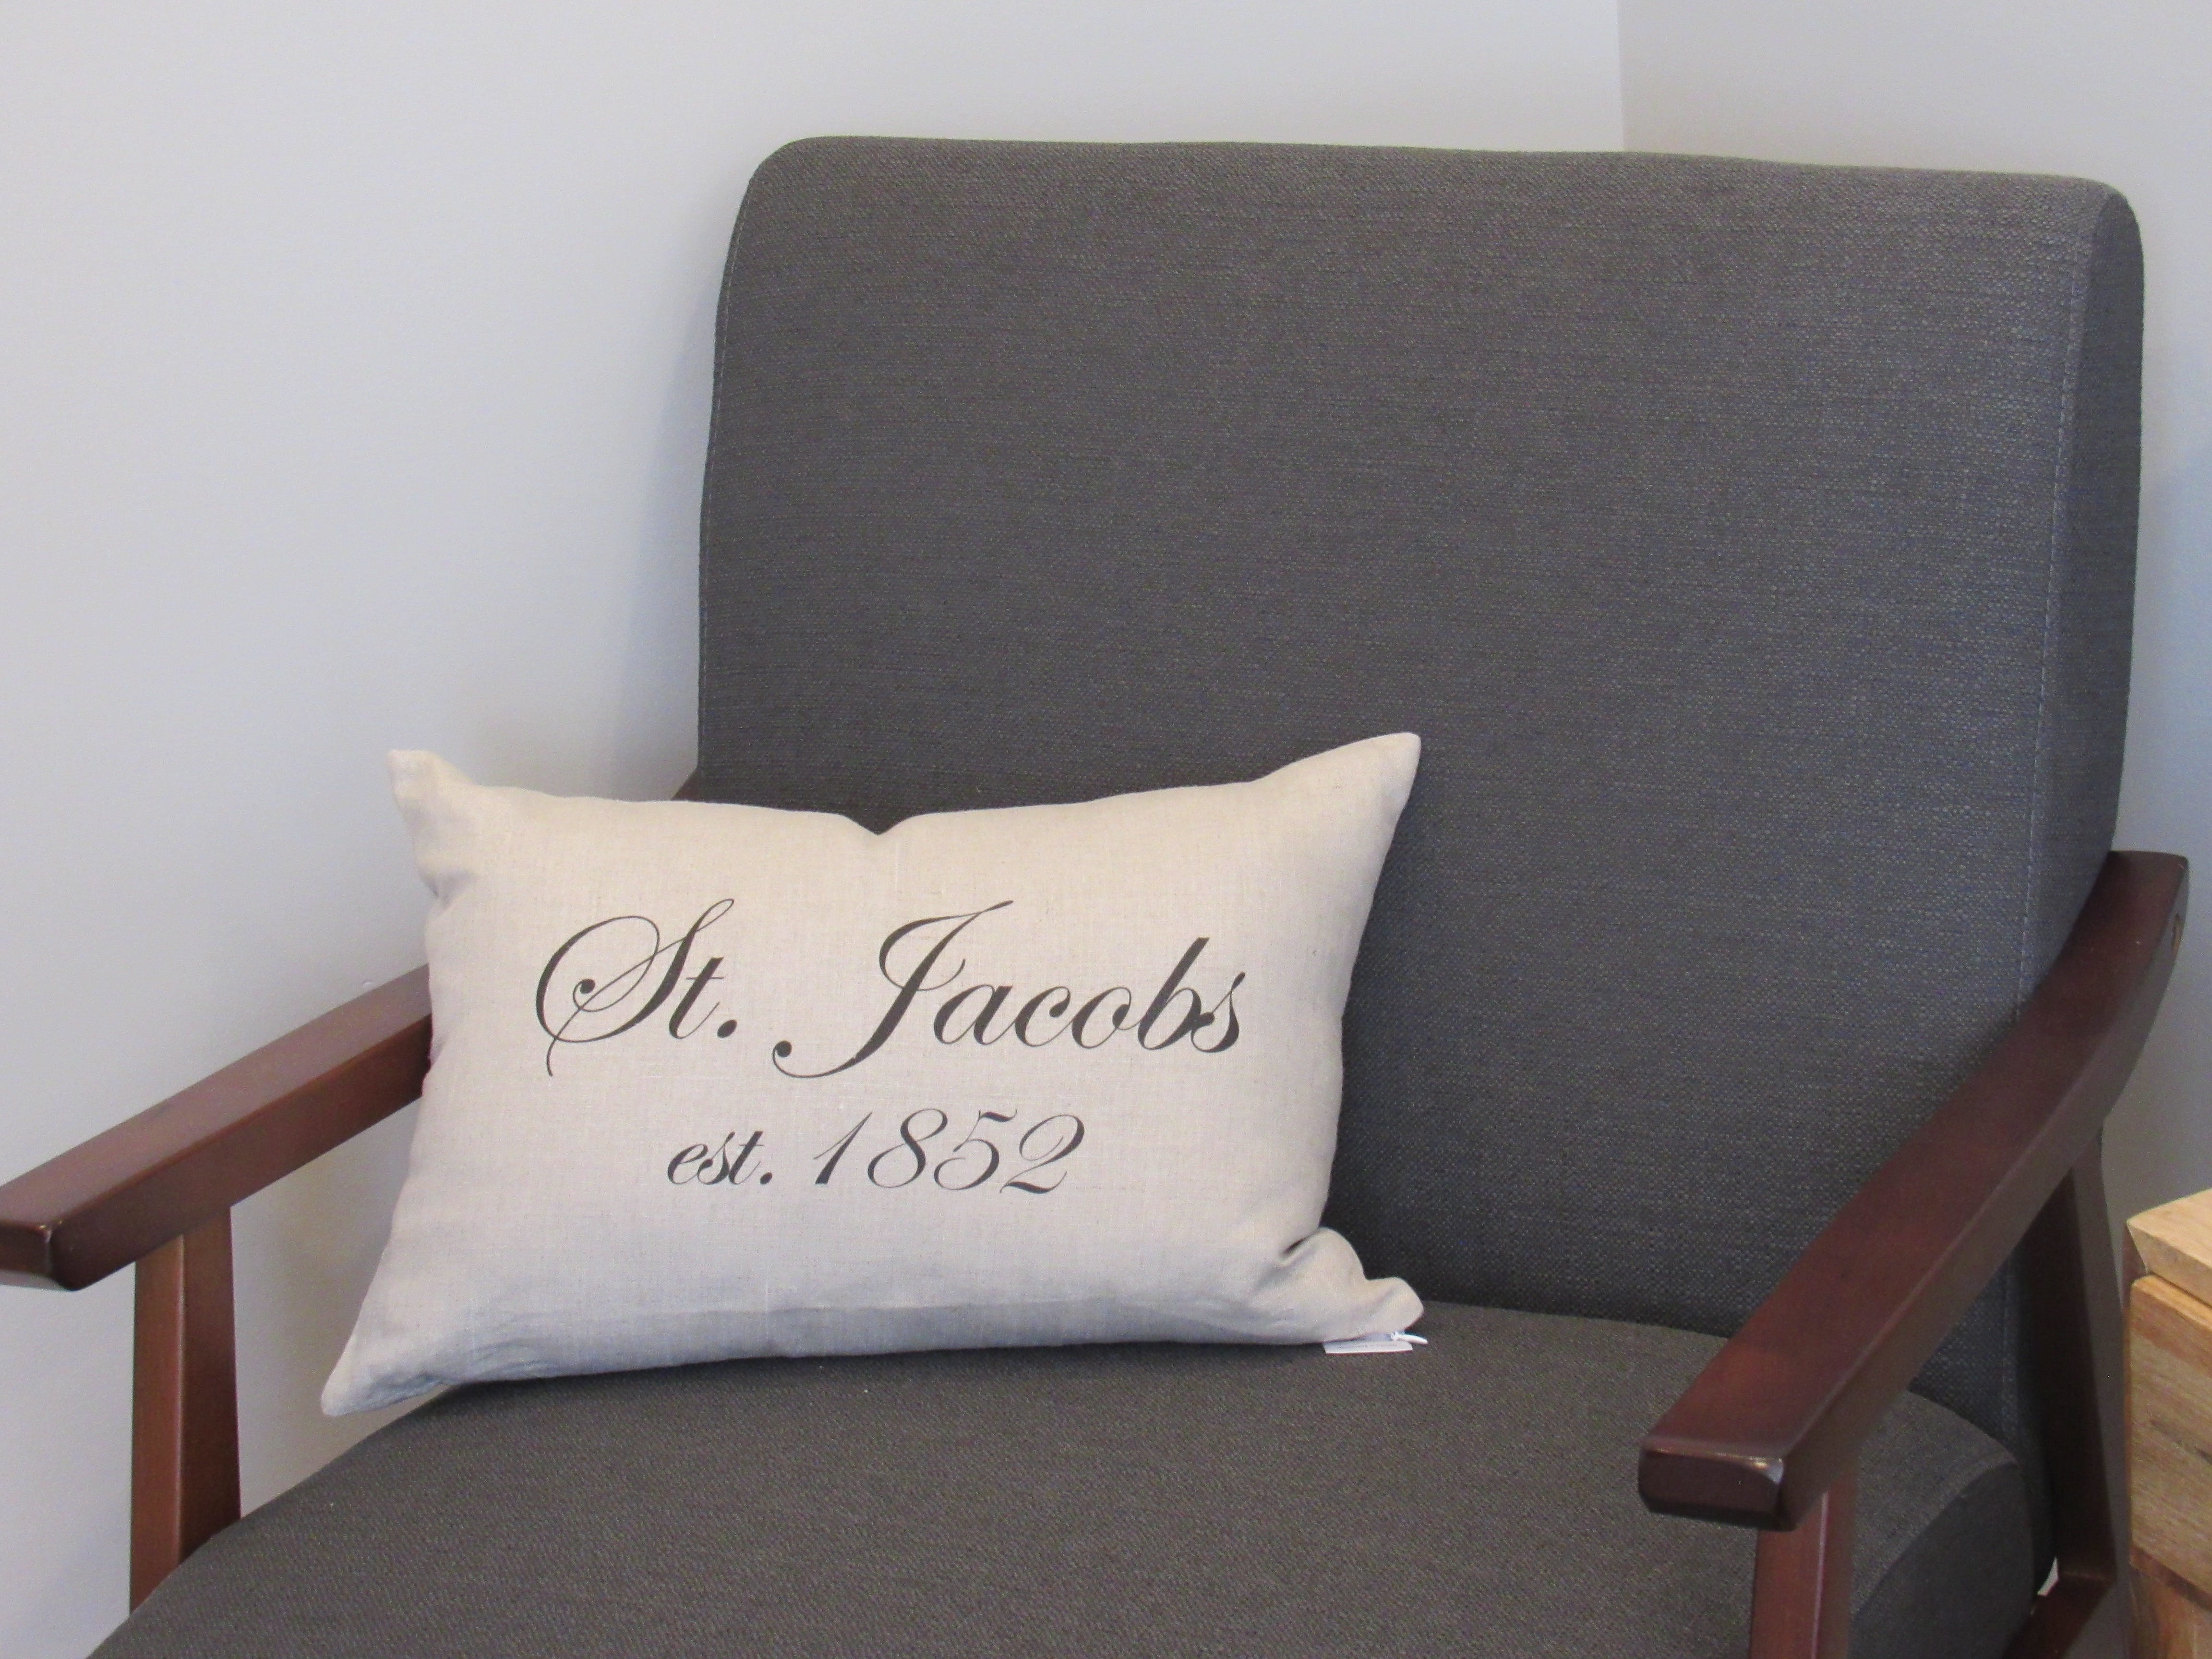 St Jacobs Suite - personalized pillow displays the history of this lovely town.